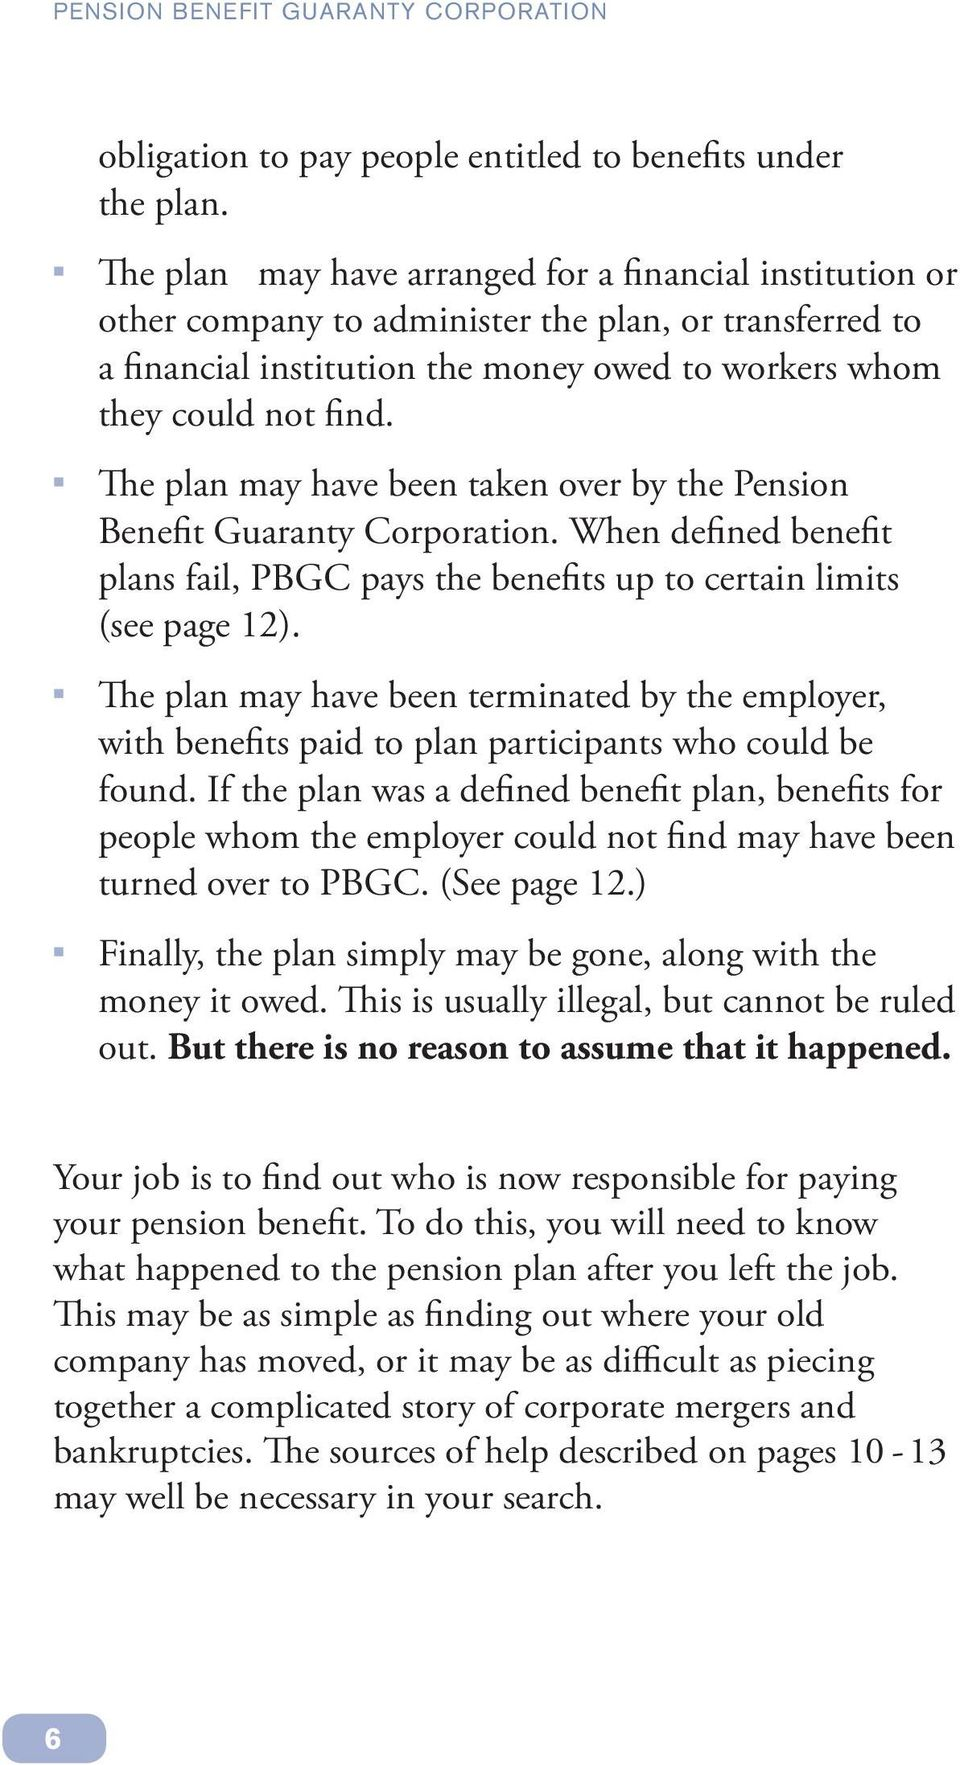 The plan may have been taken over by the Pension Benefit Guaranty Corporation. When defined benefit plans fail, PBGC pays the benefits up to certain limits (see page 12).